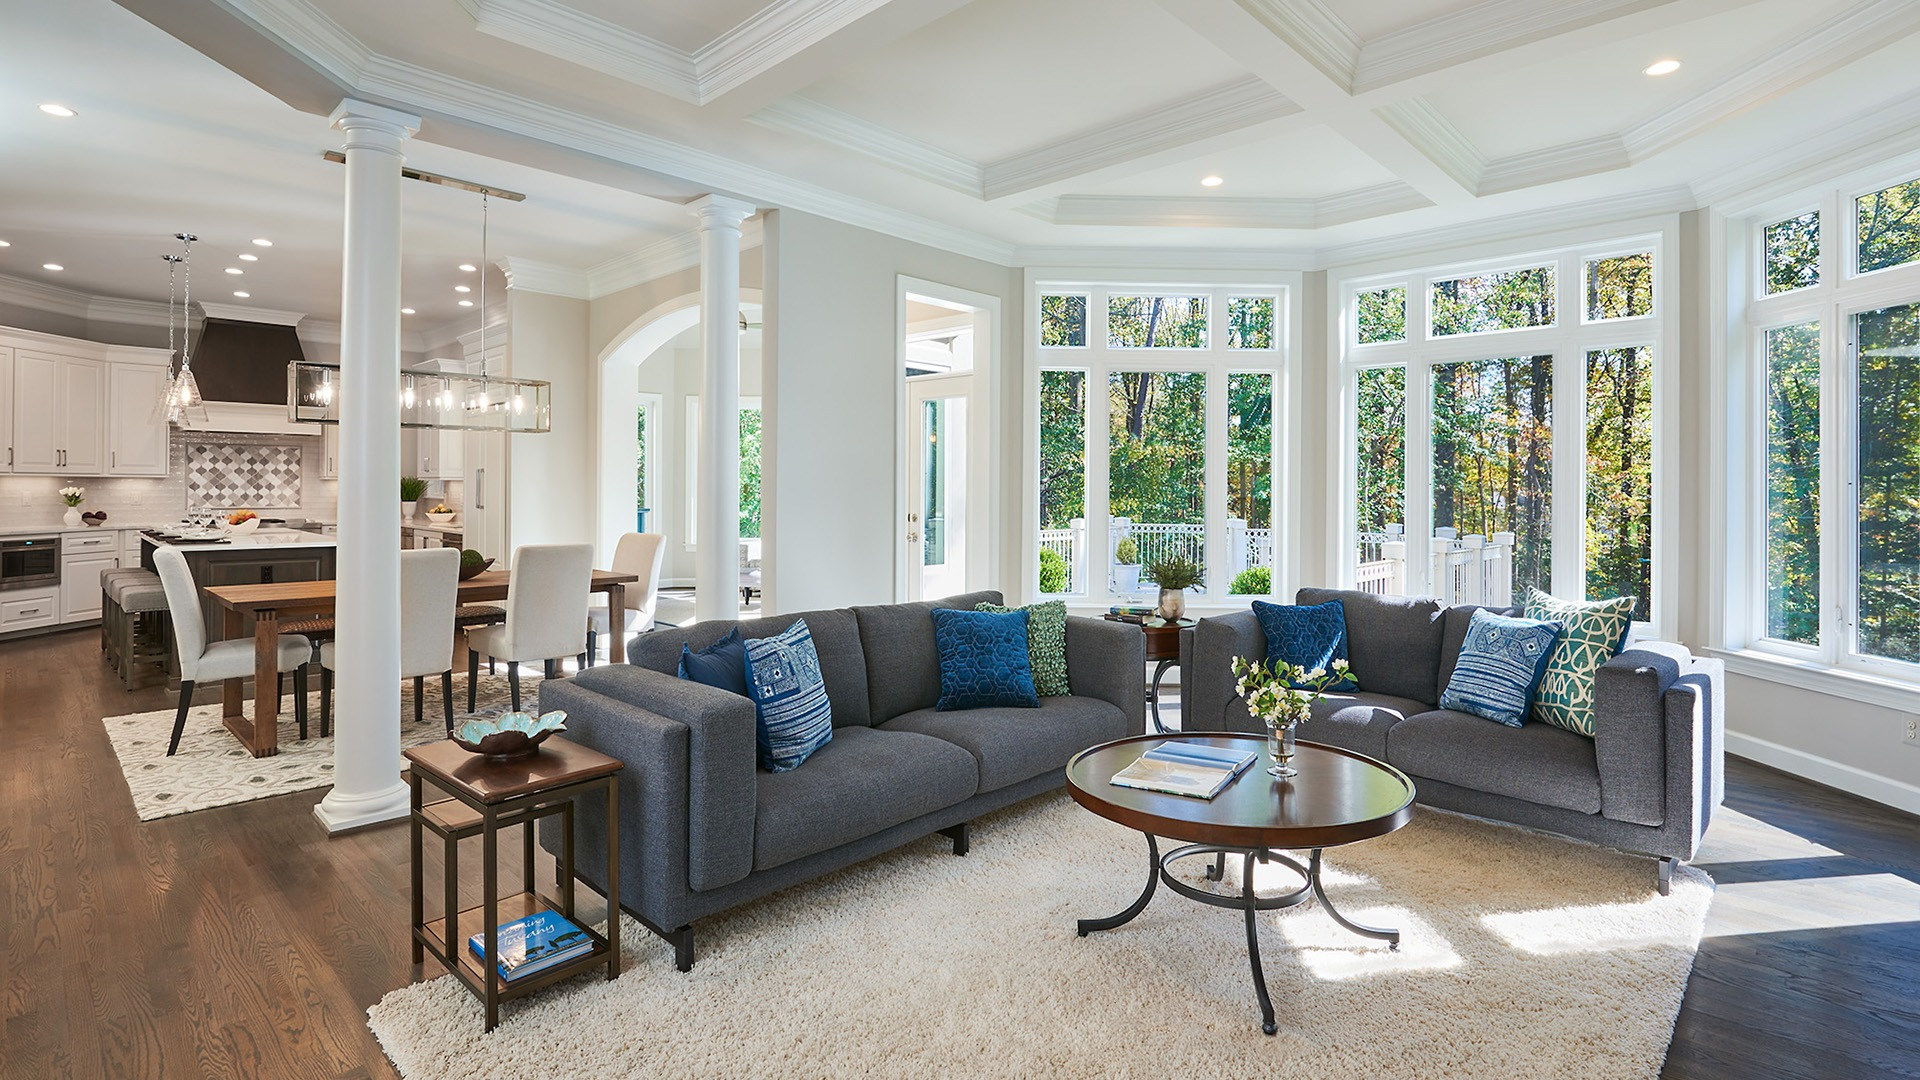 The Example Home Family Room.